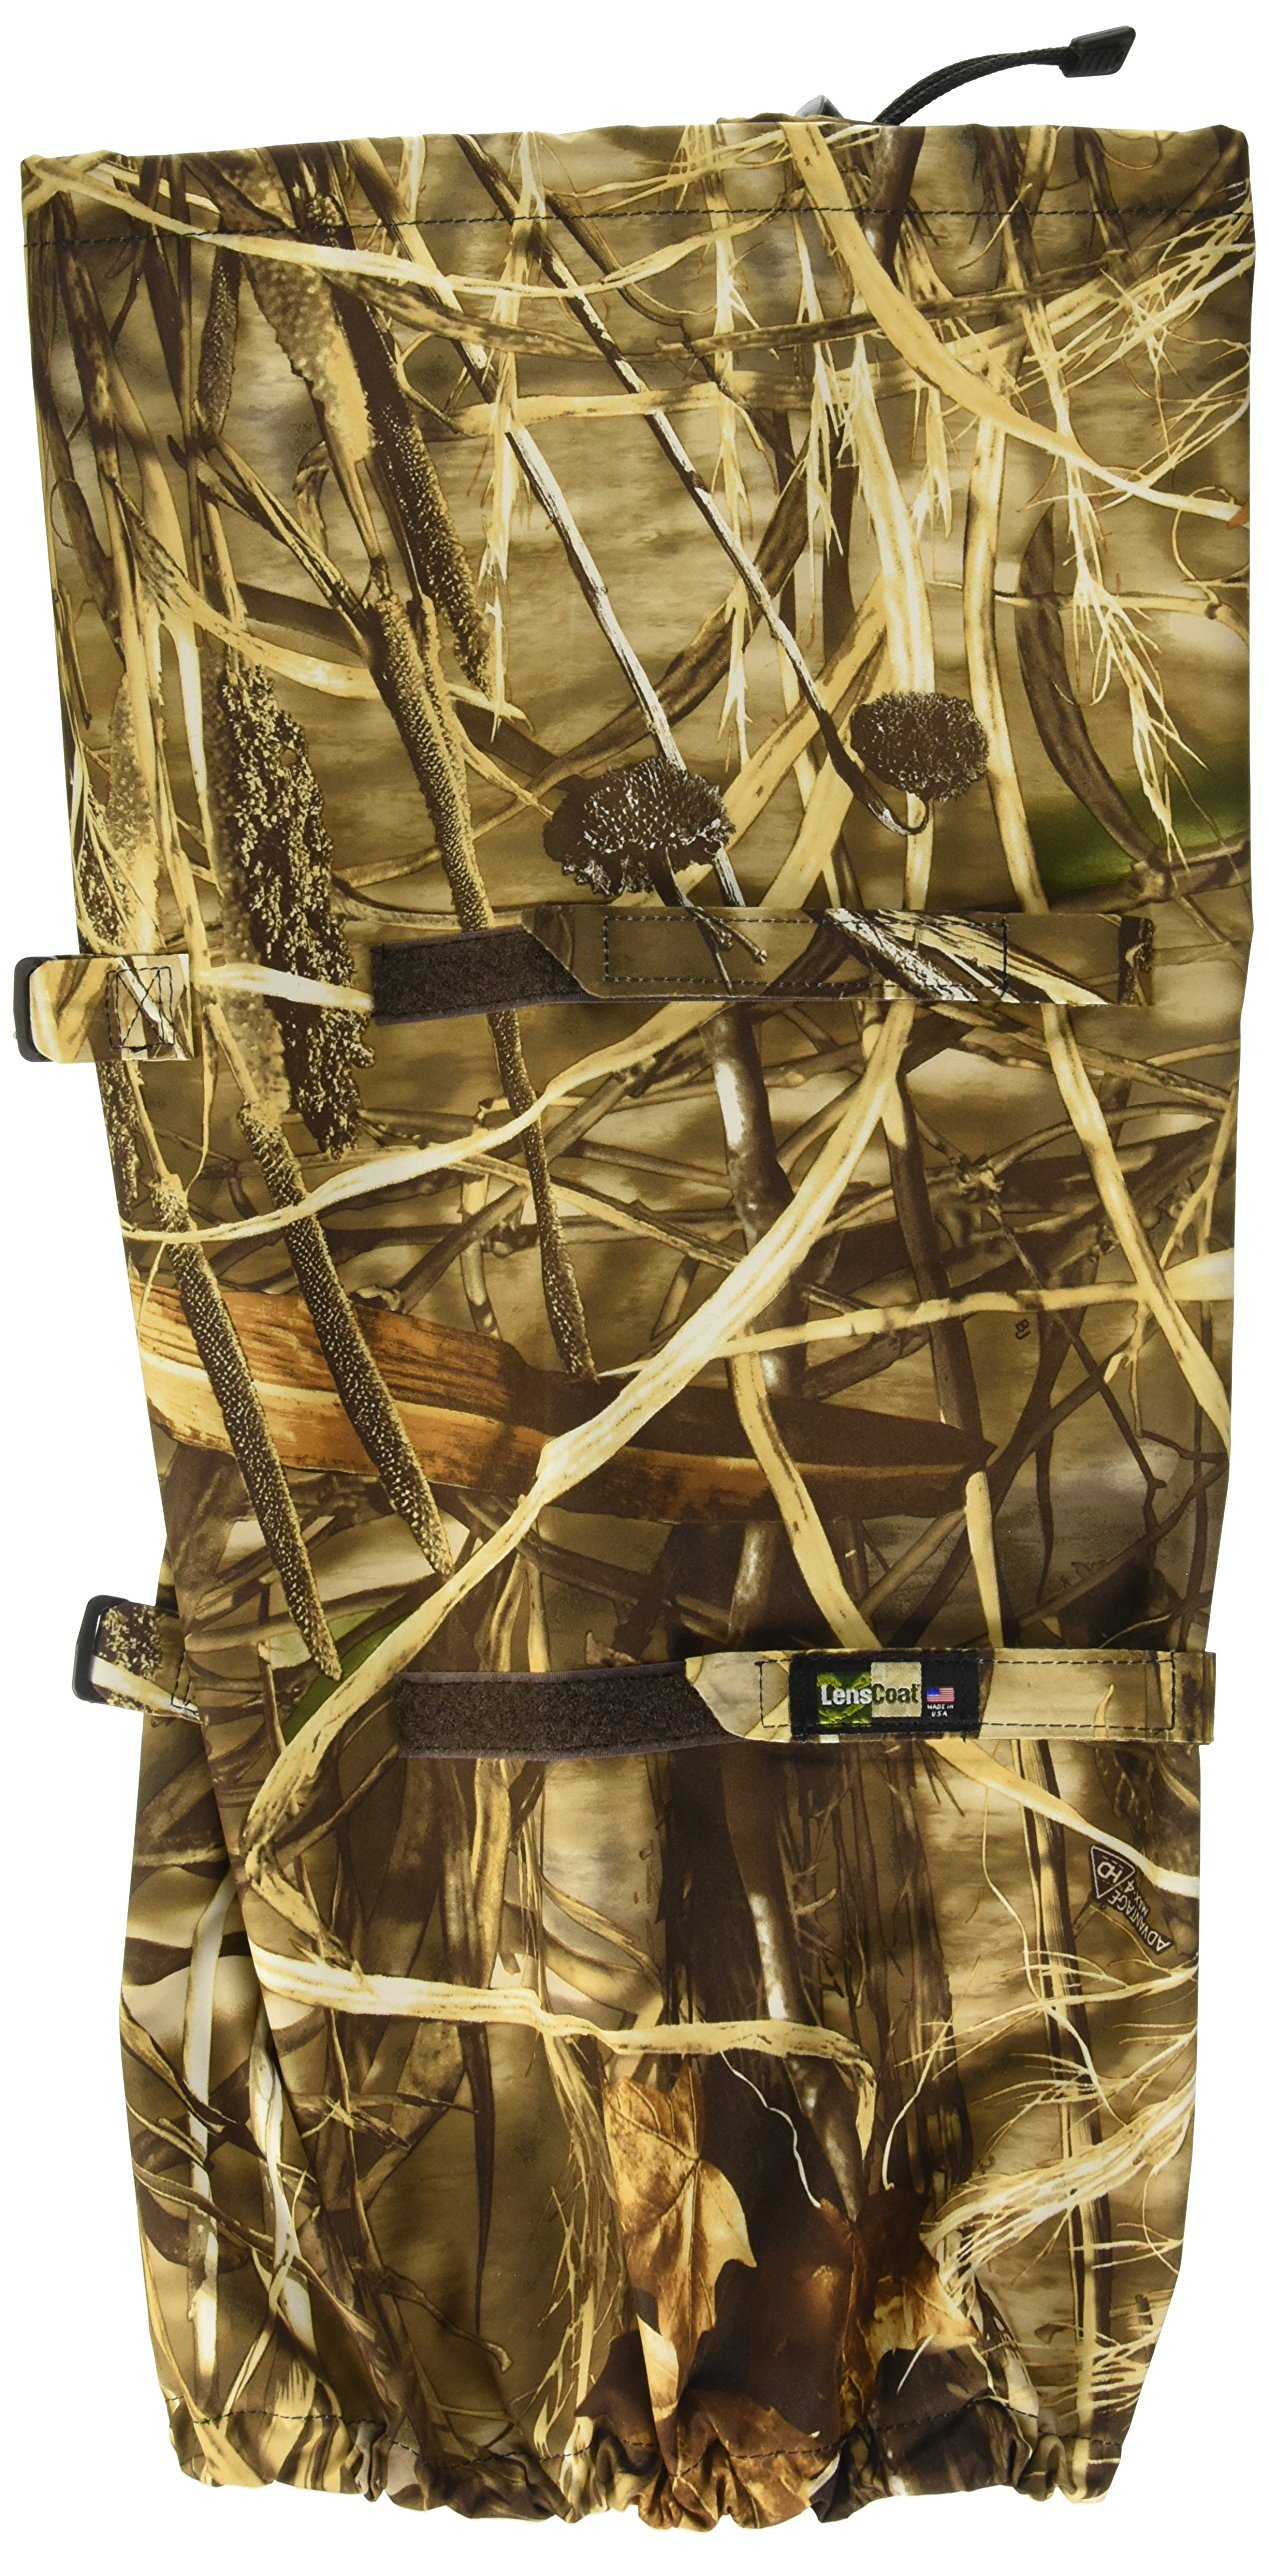 LensCoat RainCoat RS for Camera and Lens, Large Rain cover sleeve camouflage protection (Realtree Max4 HD) LCRSLM4 by LensCoat